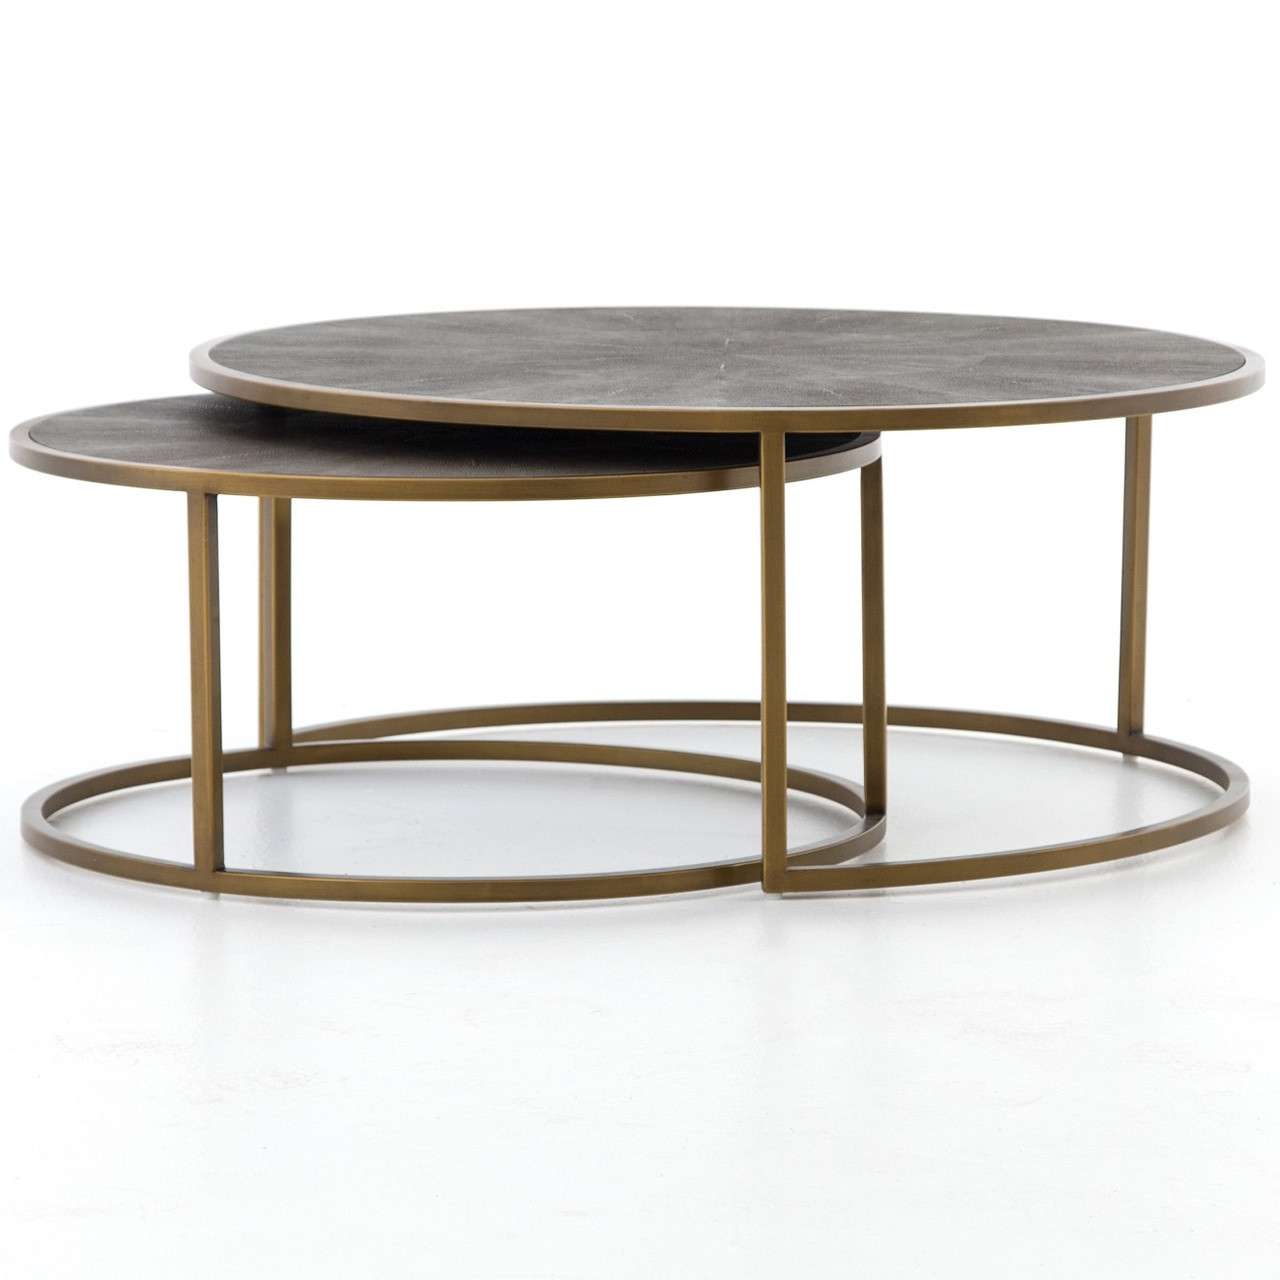 Hollywood Modern Shagreen Nesting Coffee Tables Brass Zin Home - Round nesting cocktail table